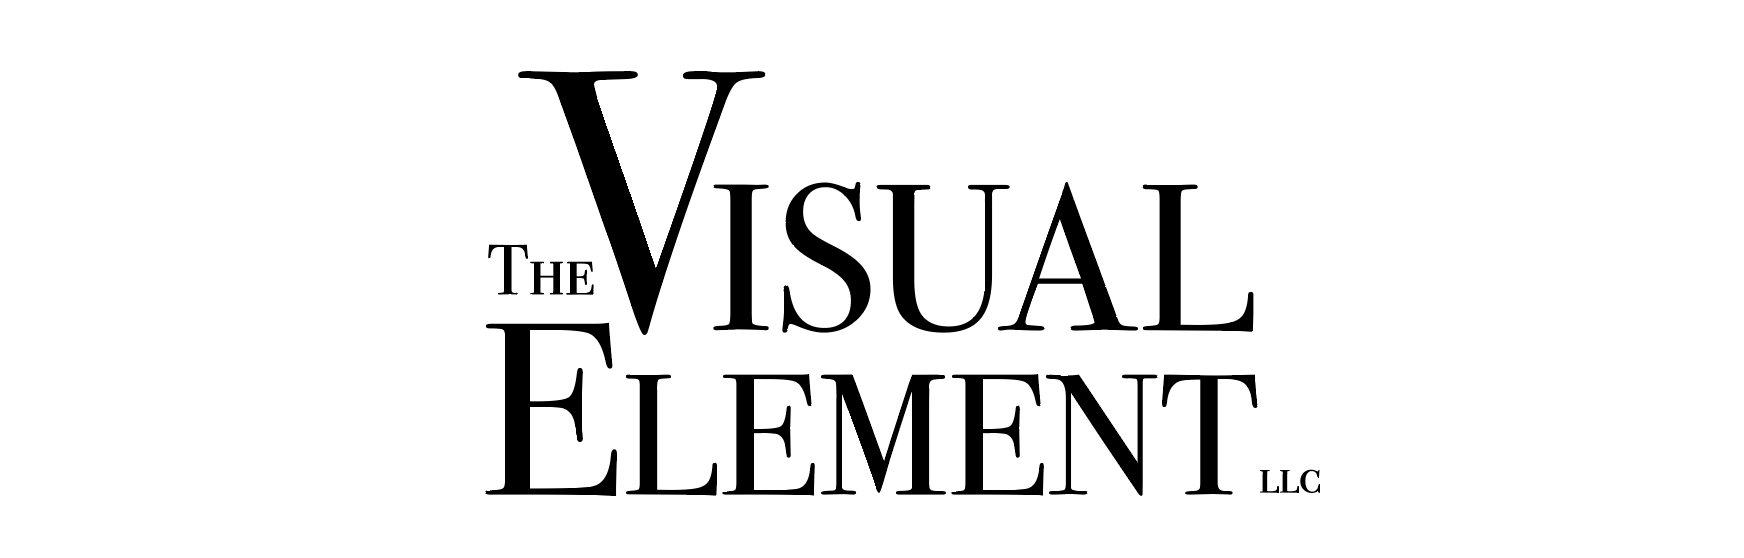 The Visual Element